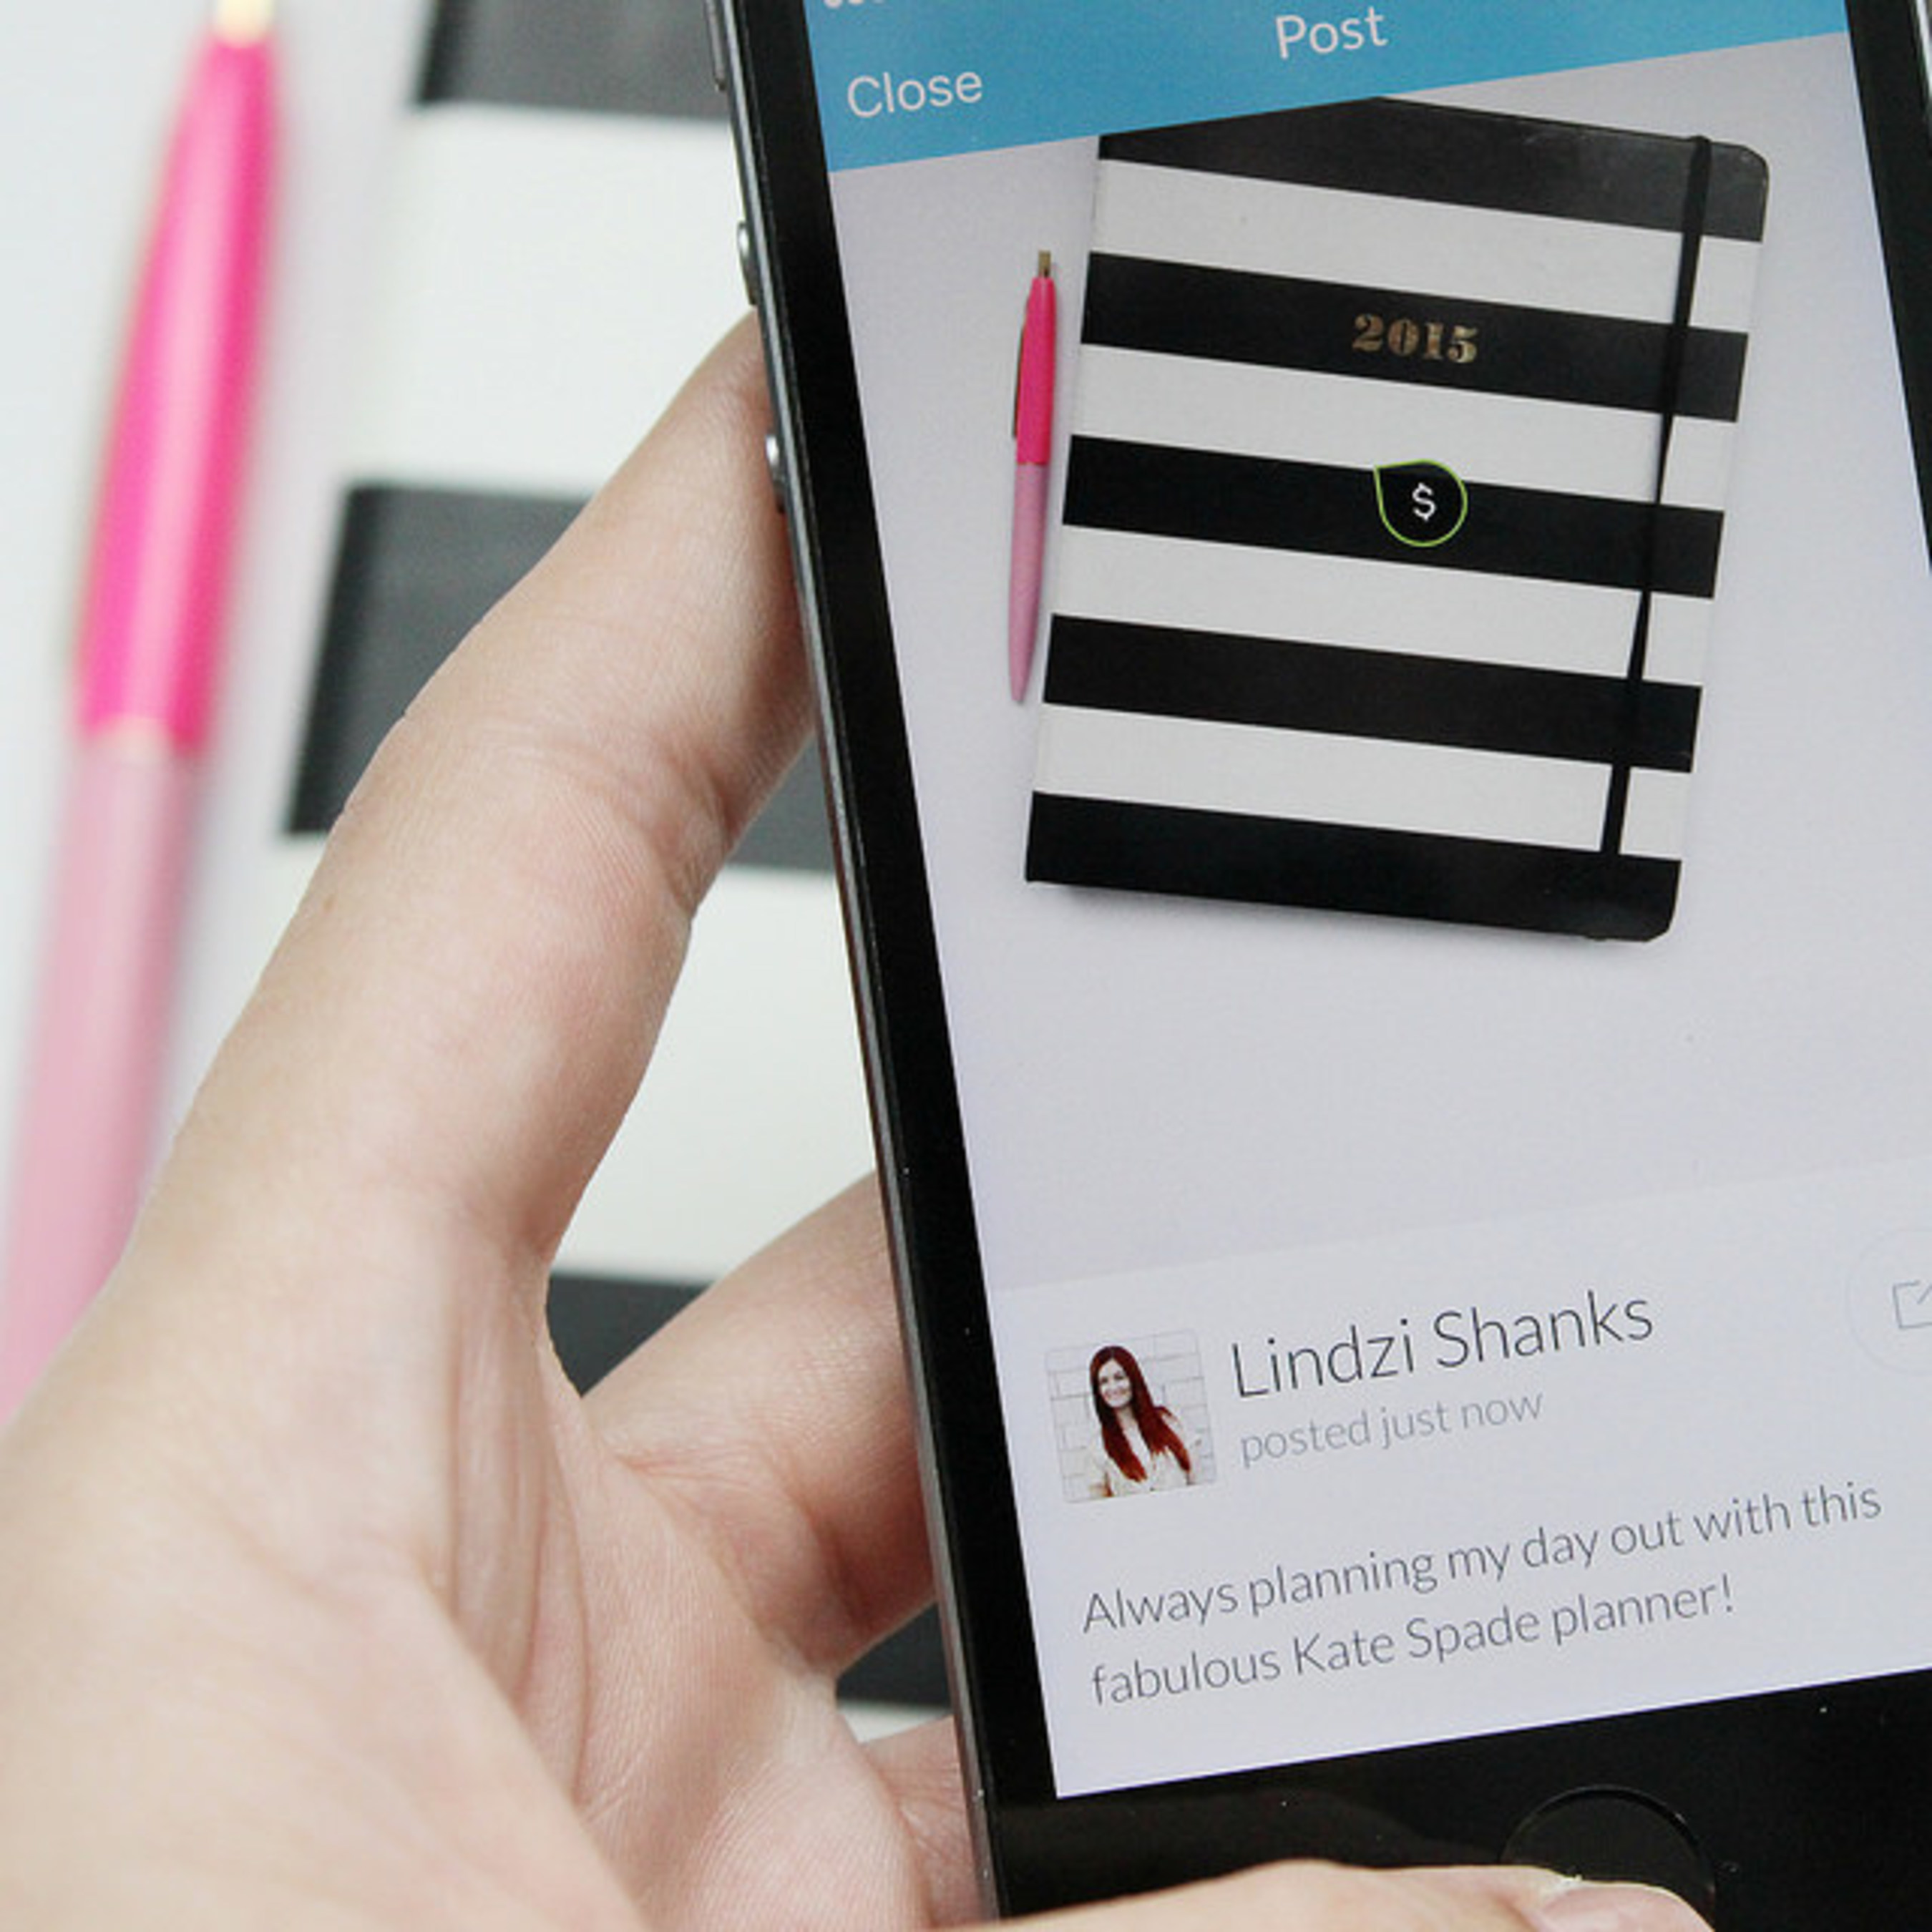 Tagspire mobile app featuring user-generated post with an instant purchase option for everyday lifestyle product recommendations.